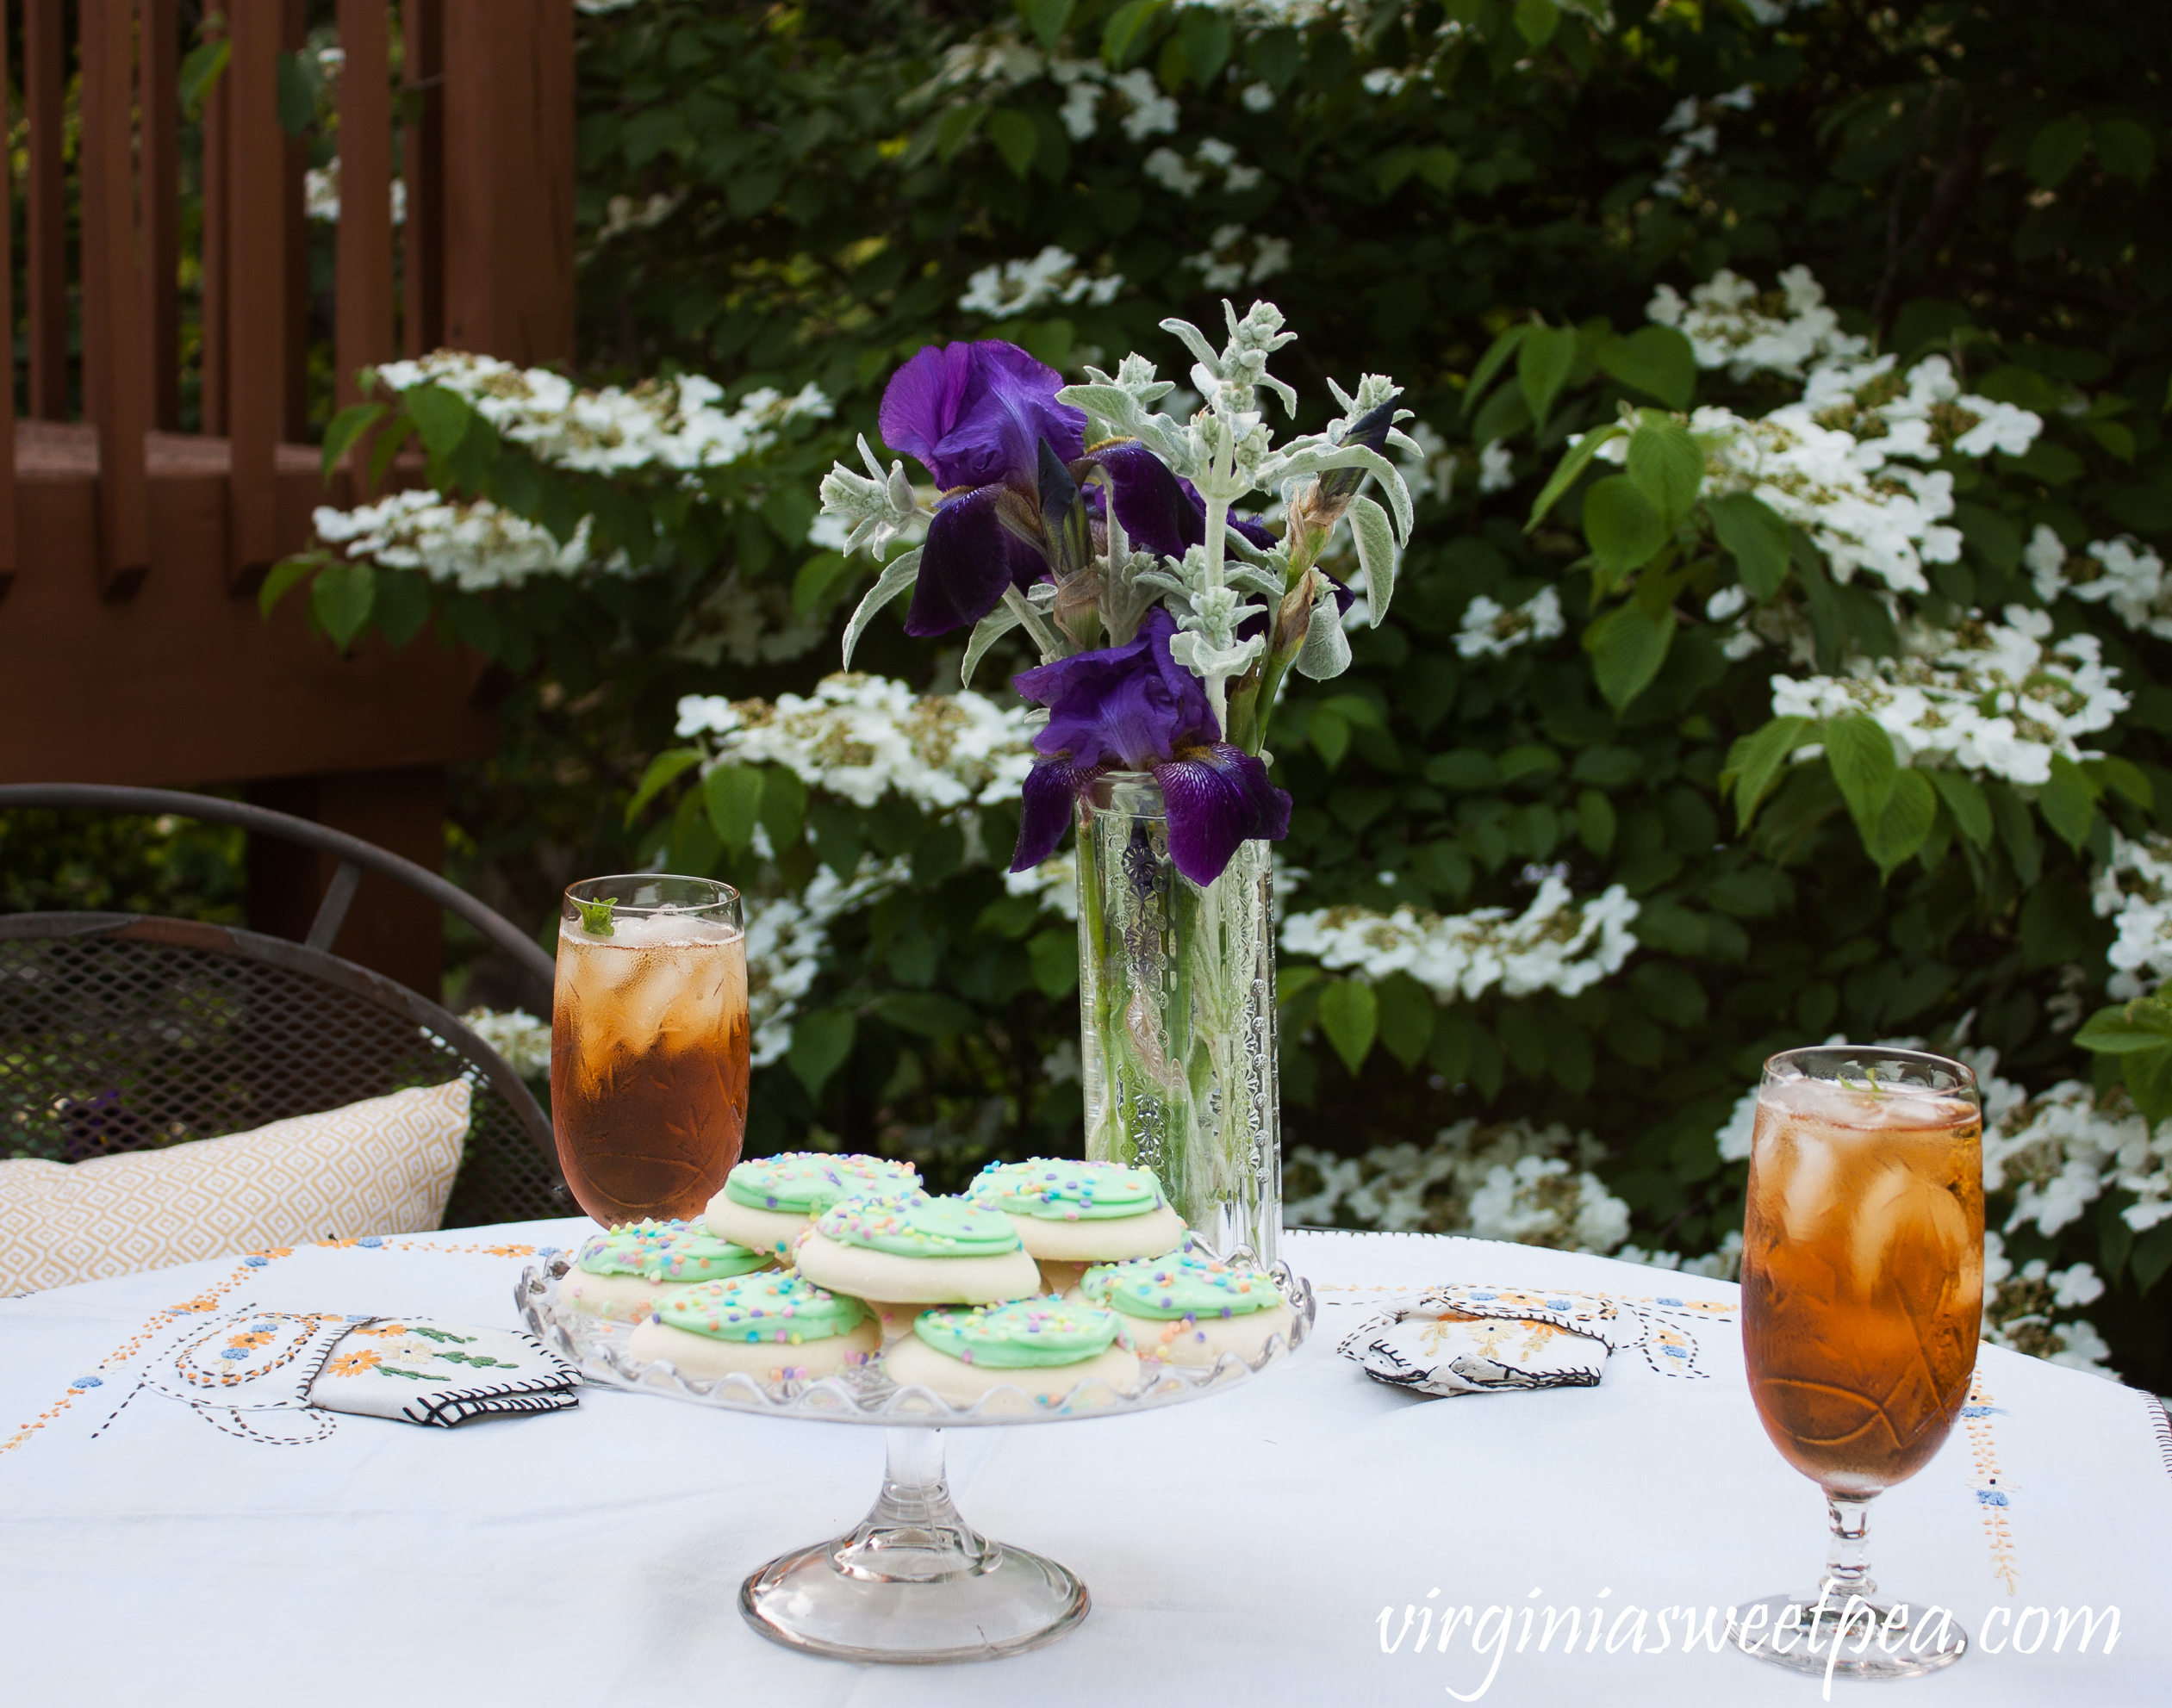 A Tea Party Featuring a 1930's Tea Themed Embroidered Tablecloth and vintage cake server, crystal, and flower vase.